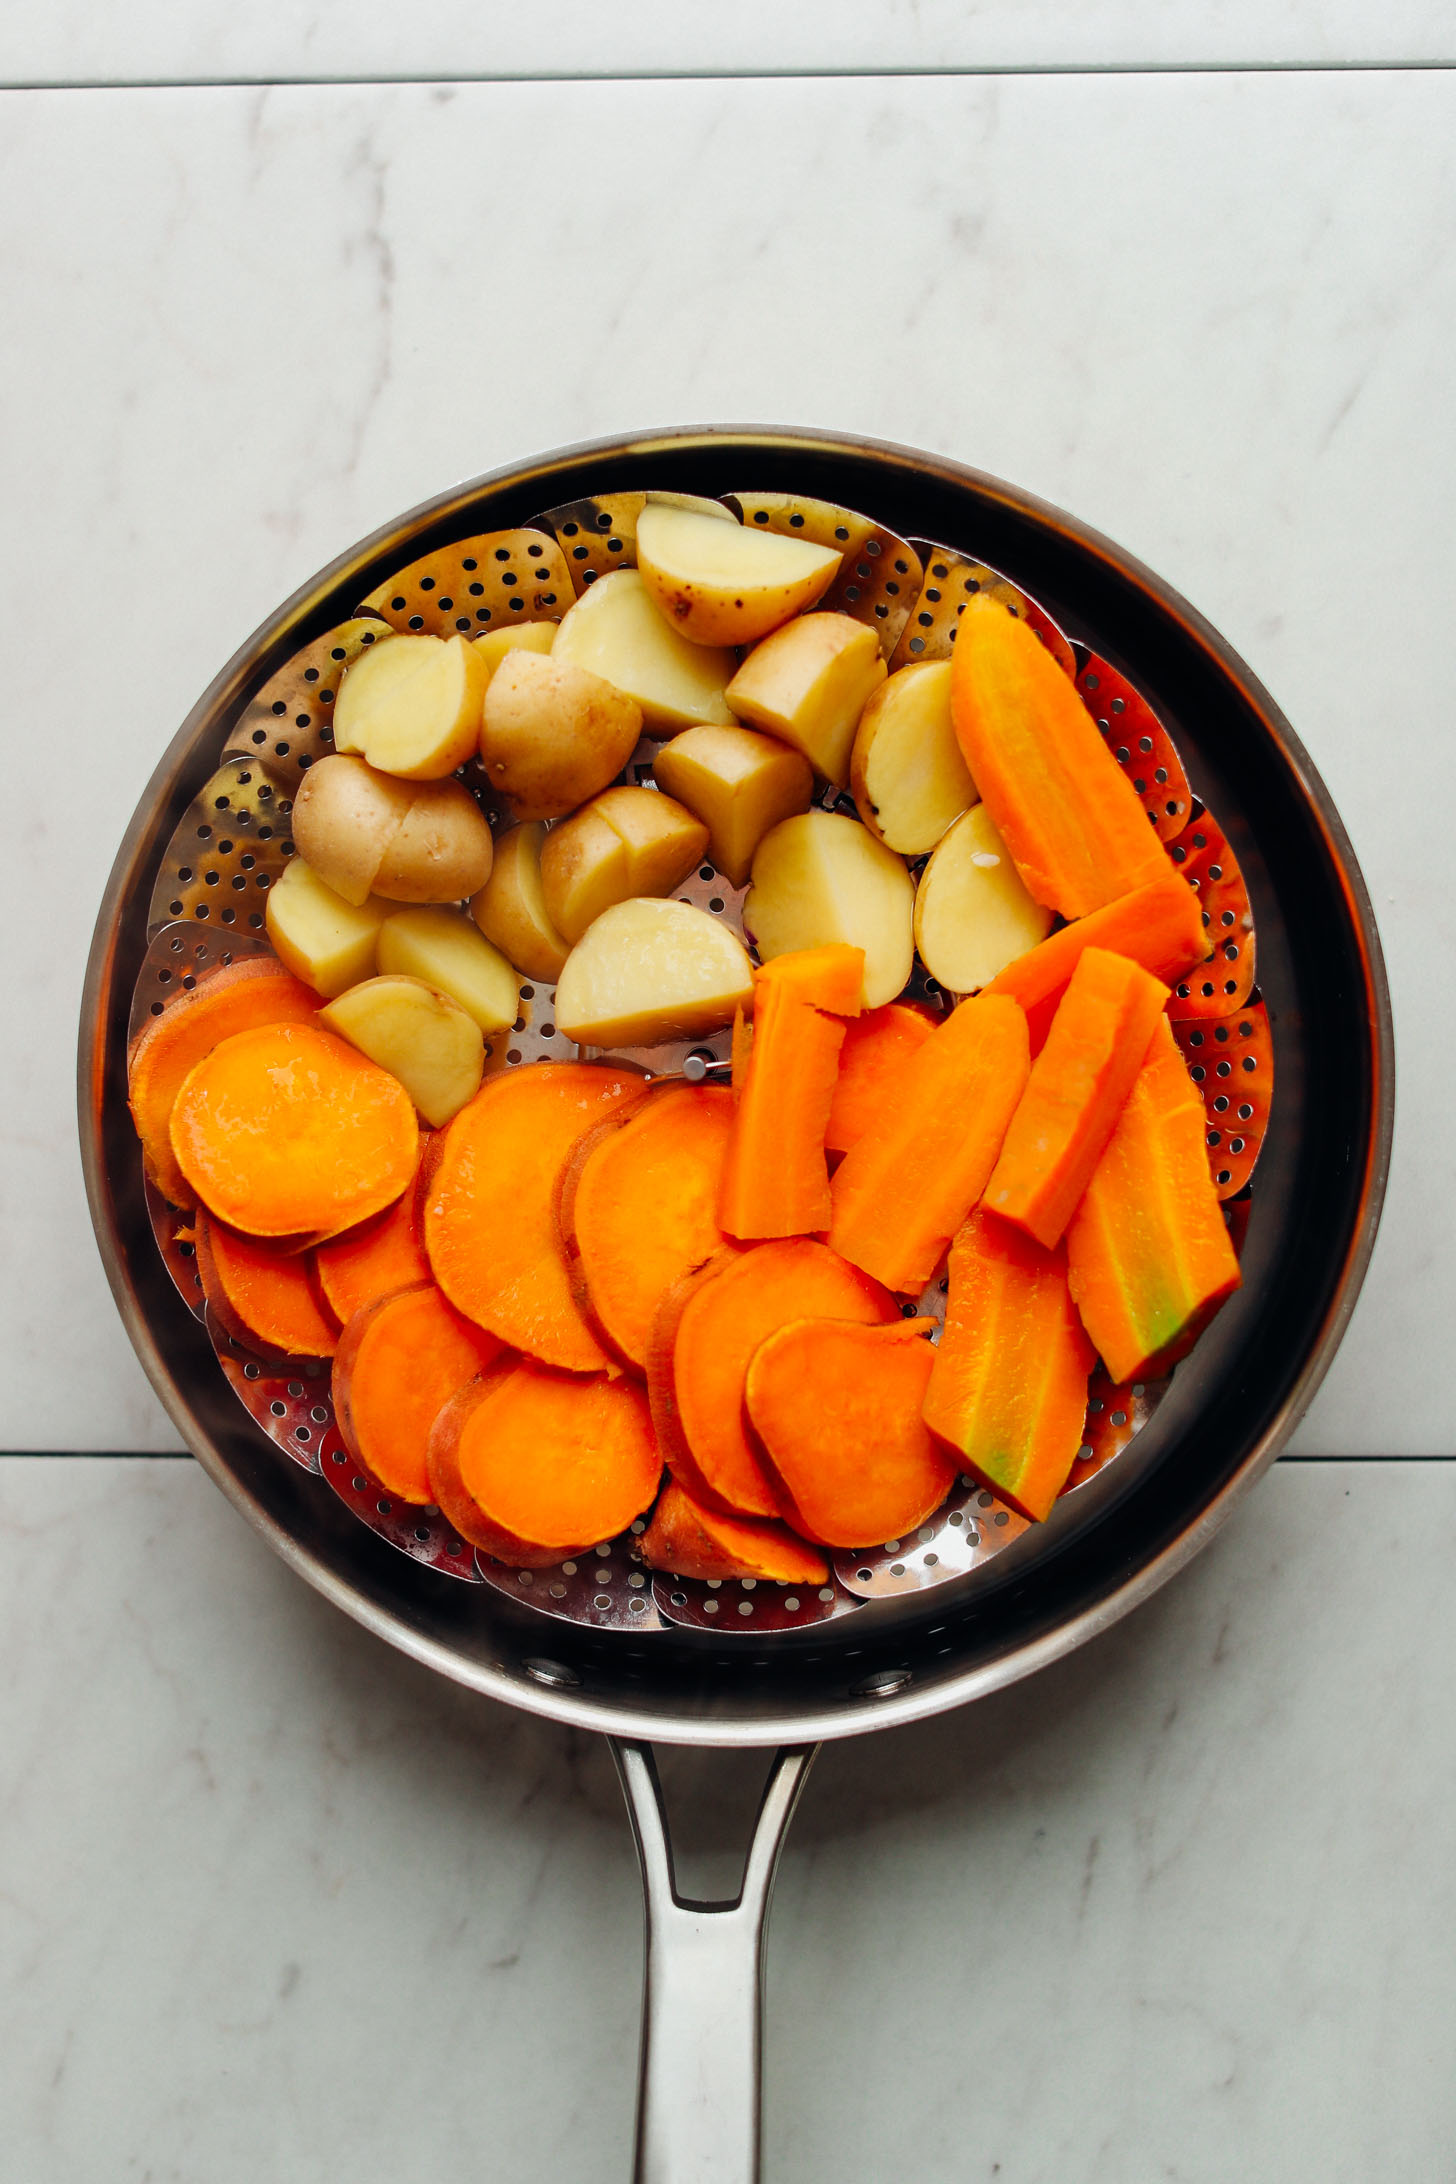 Steam basket filled with chopped potatoes, sweet potatoes, and carrots ready to be softened before roasting